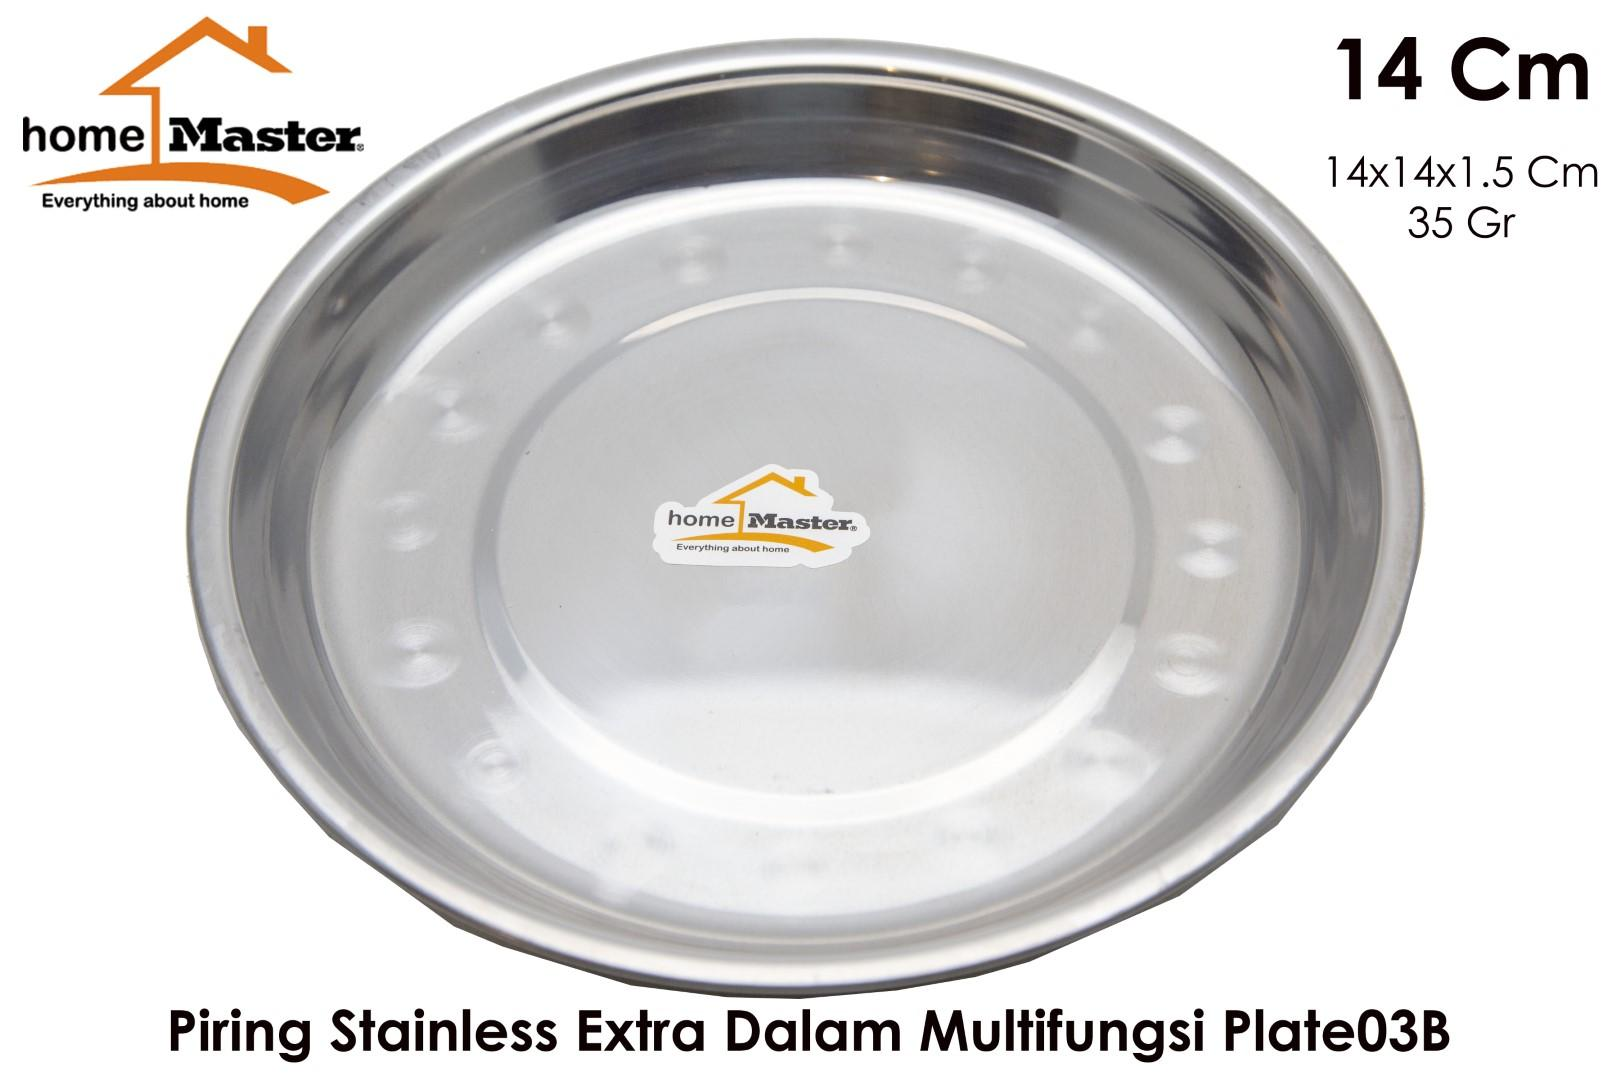 HomeMaster Piring Stainless Multifungsi Ekonomis 0.3 mm model B 14 Cm Plate03B14